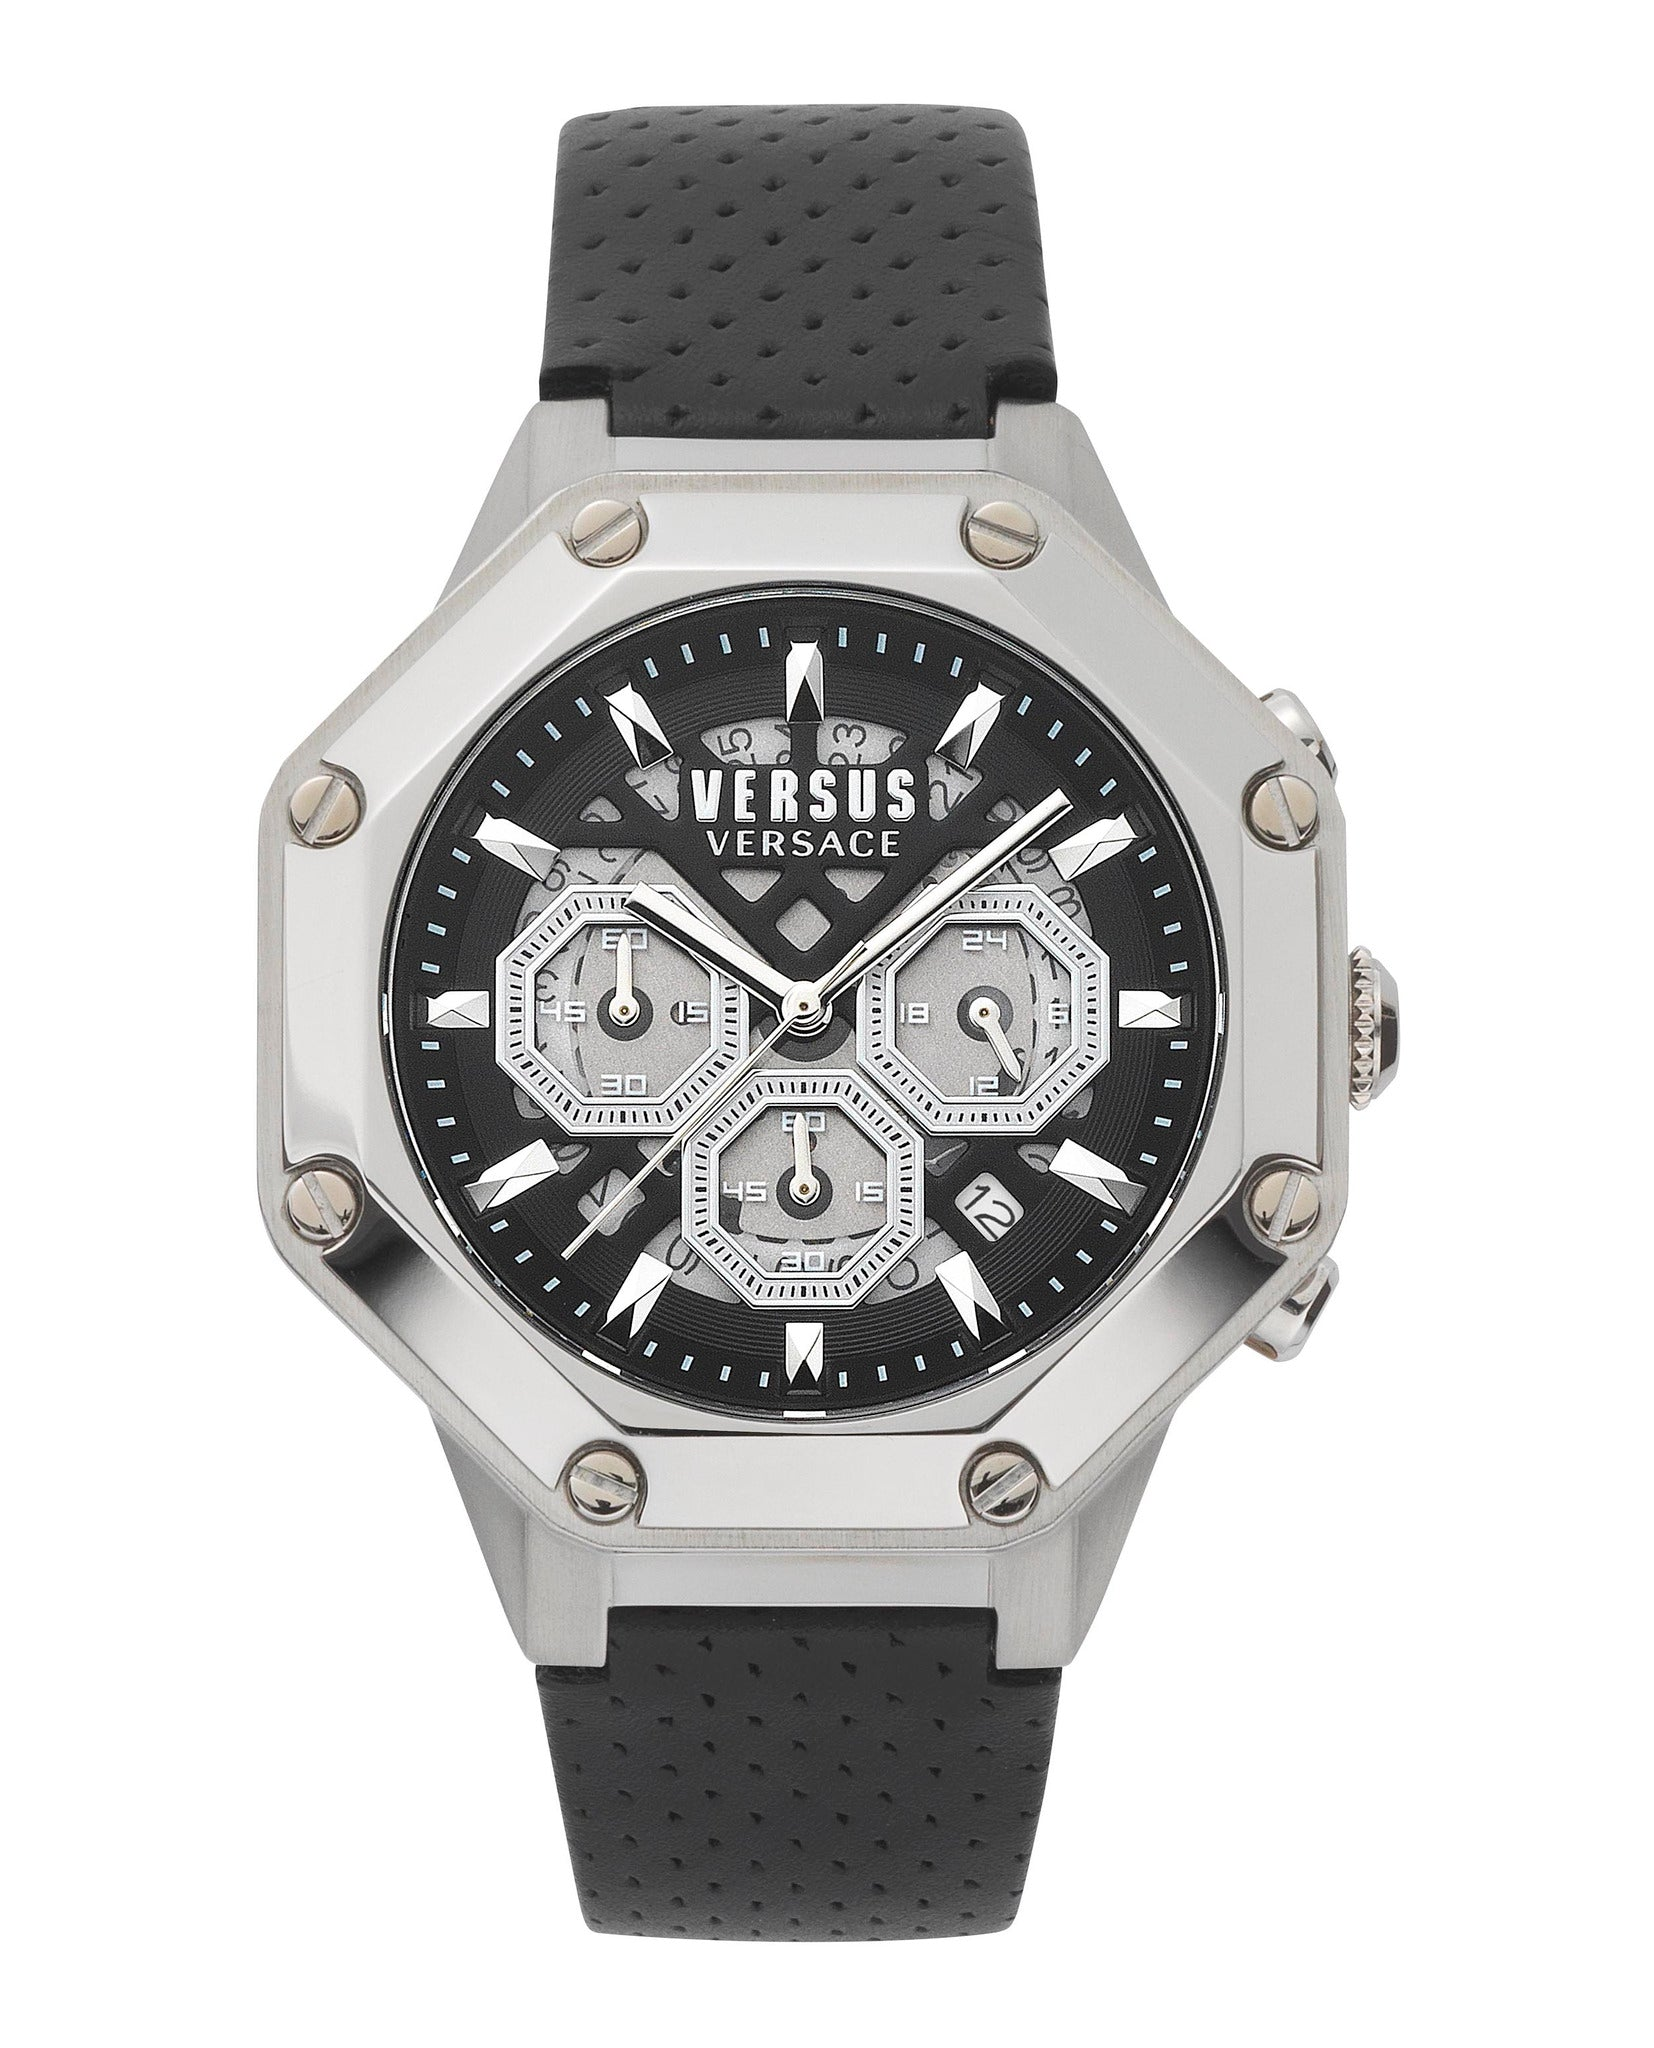 Palestro Chronograph Watch